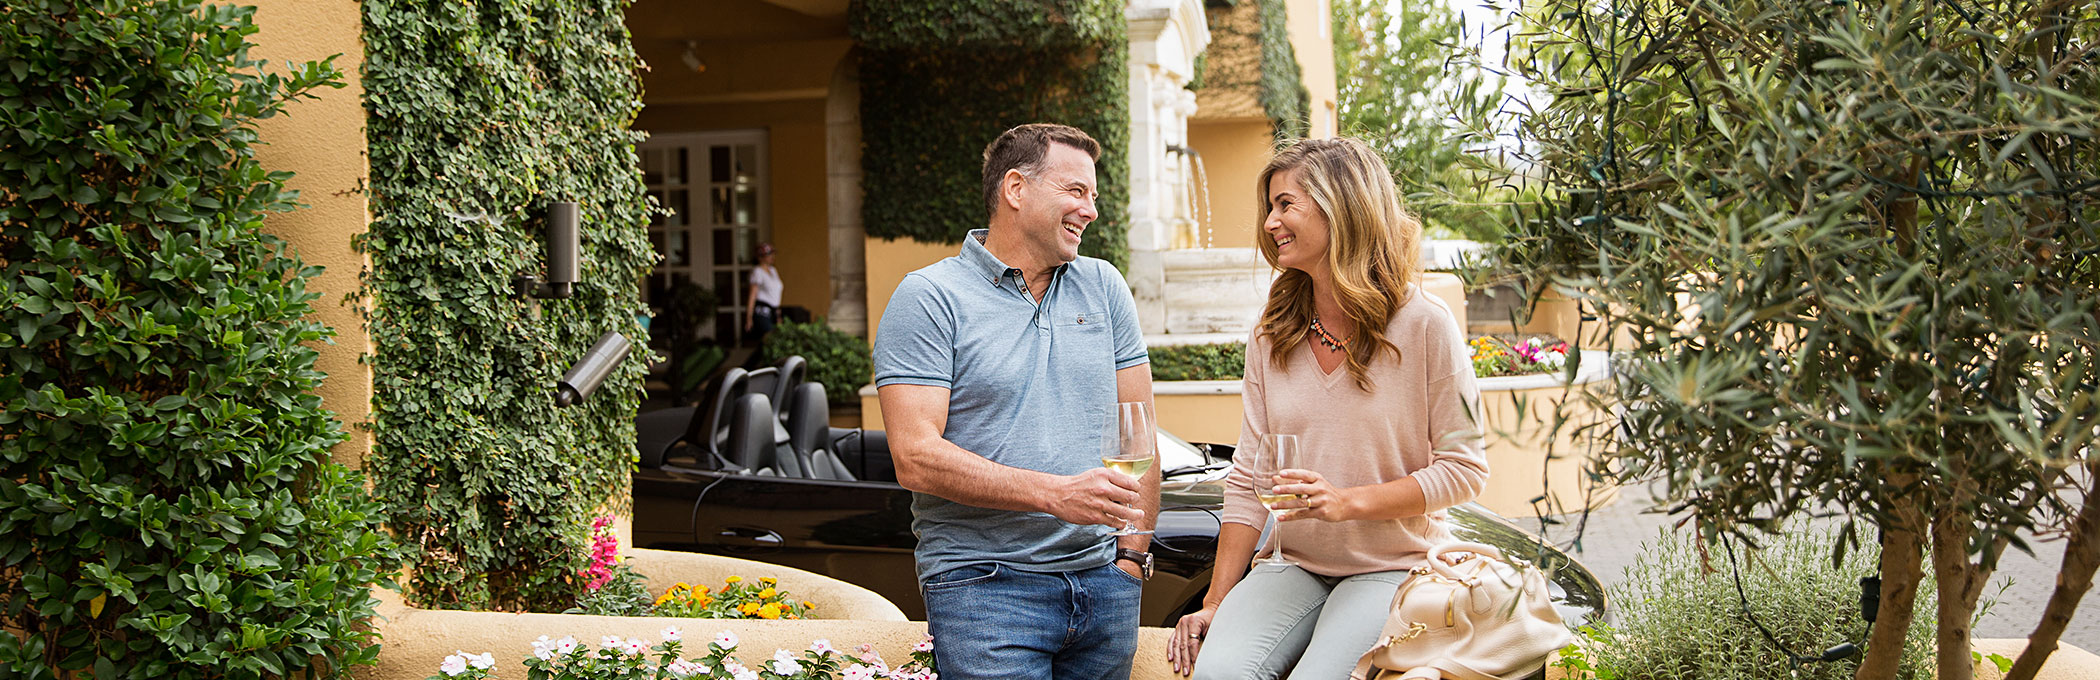 Couple laughing in hotel courtyard